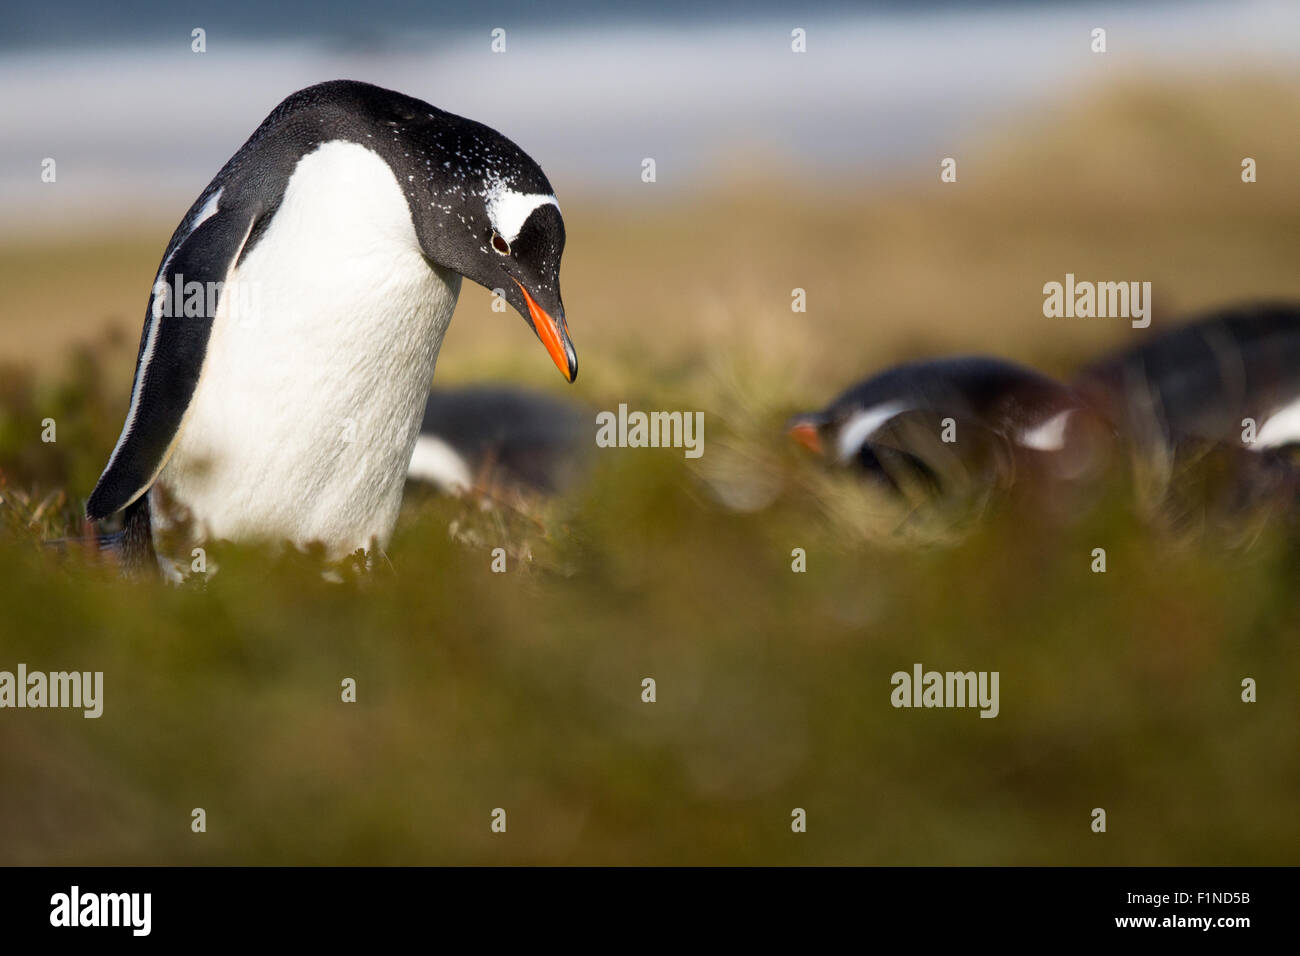 Gentoo Penguin (Pygoscelis papua) in his colony in the grass. - Stock Image